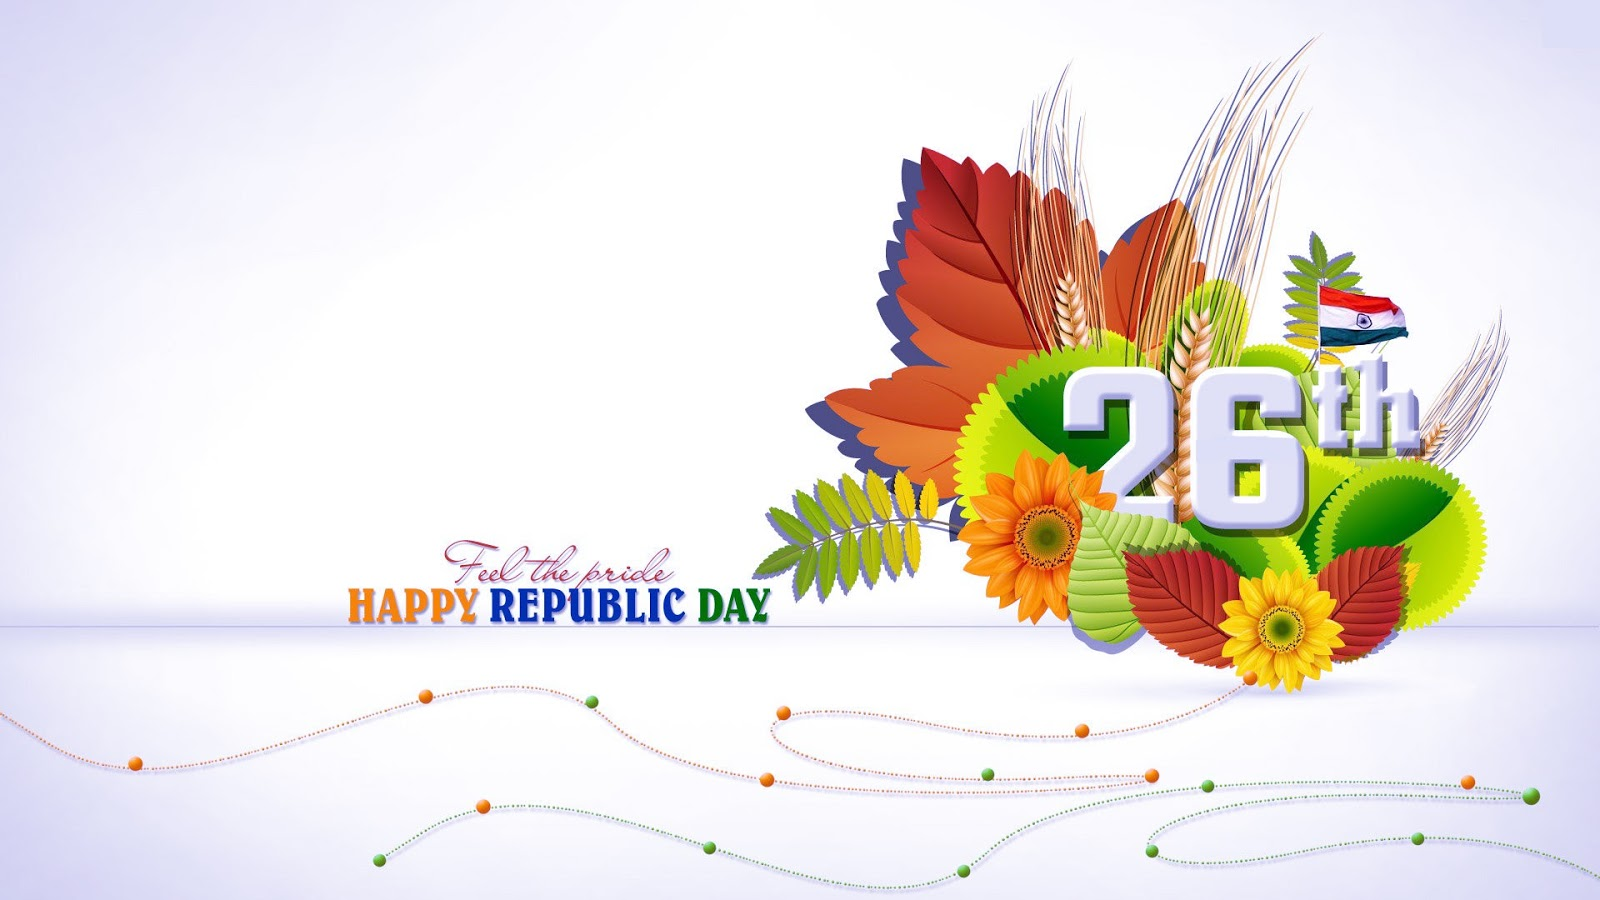 Republic Day Images With Quotes: Happy Republic Day 2018 Wishes Quotes Wallpapers Live